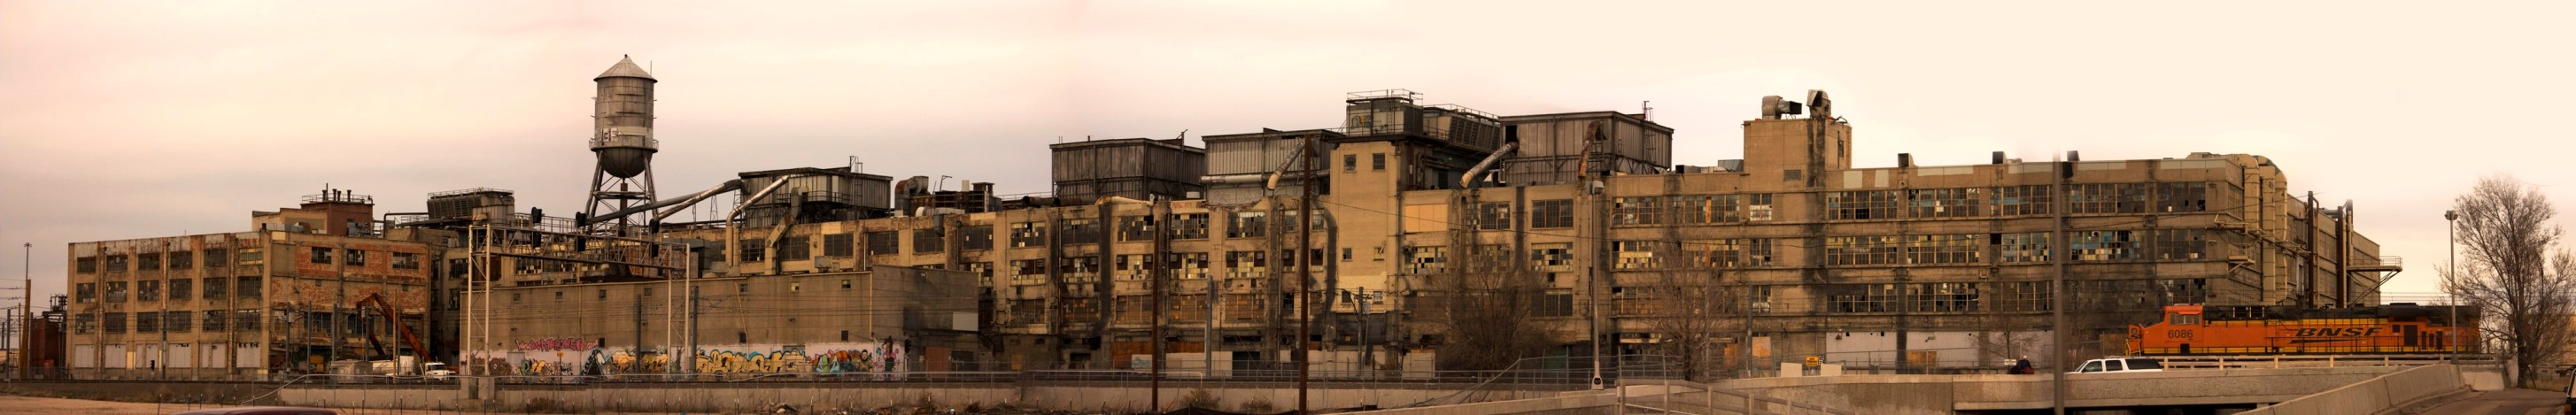 Redevelopment Of The Former Gates Rubber Company Site Kaplan Kirsch Rockwell